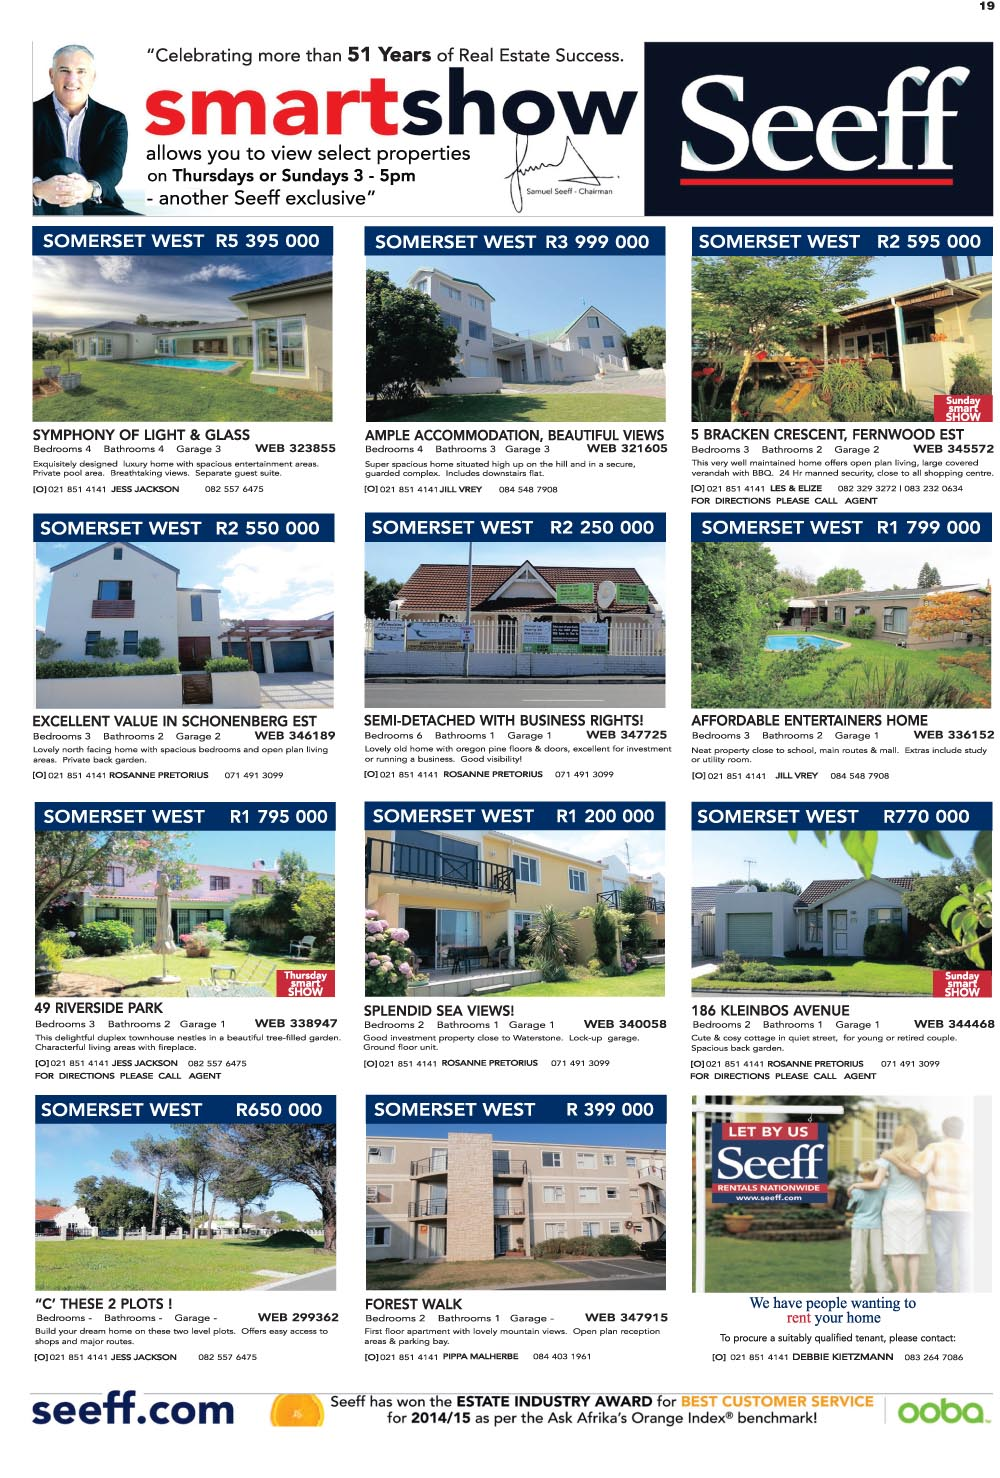 You are browsing images from the article: Property Selection April 22 2015